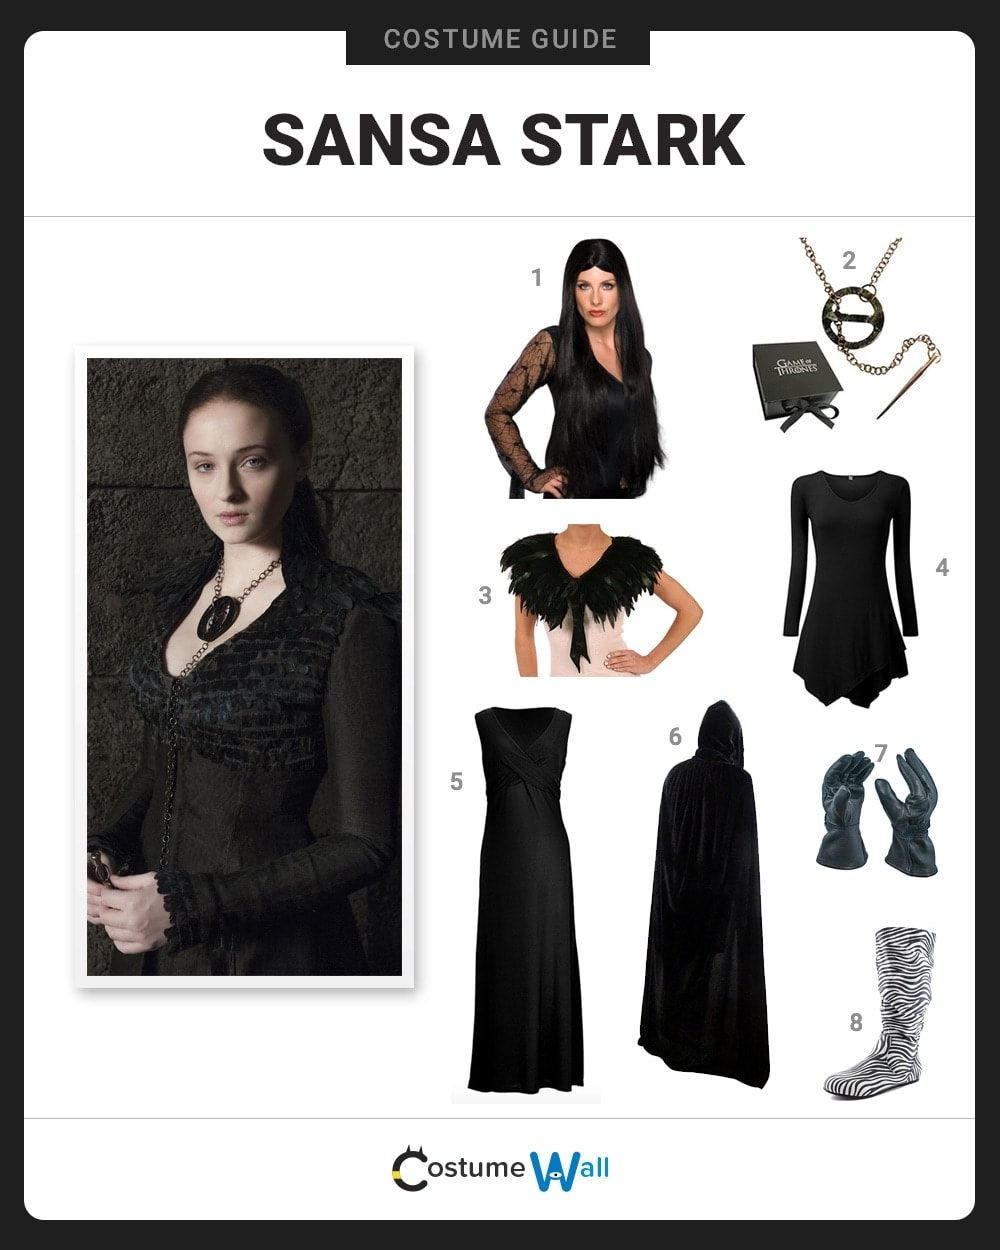 Sansa Stark Costume Guide